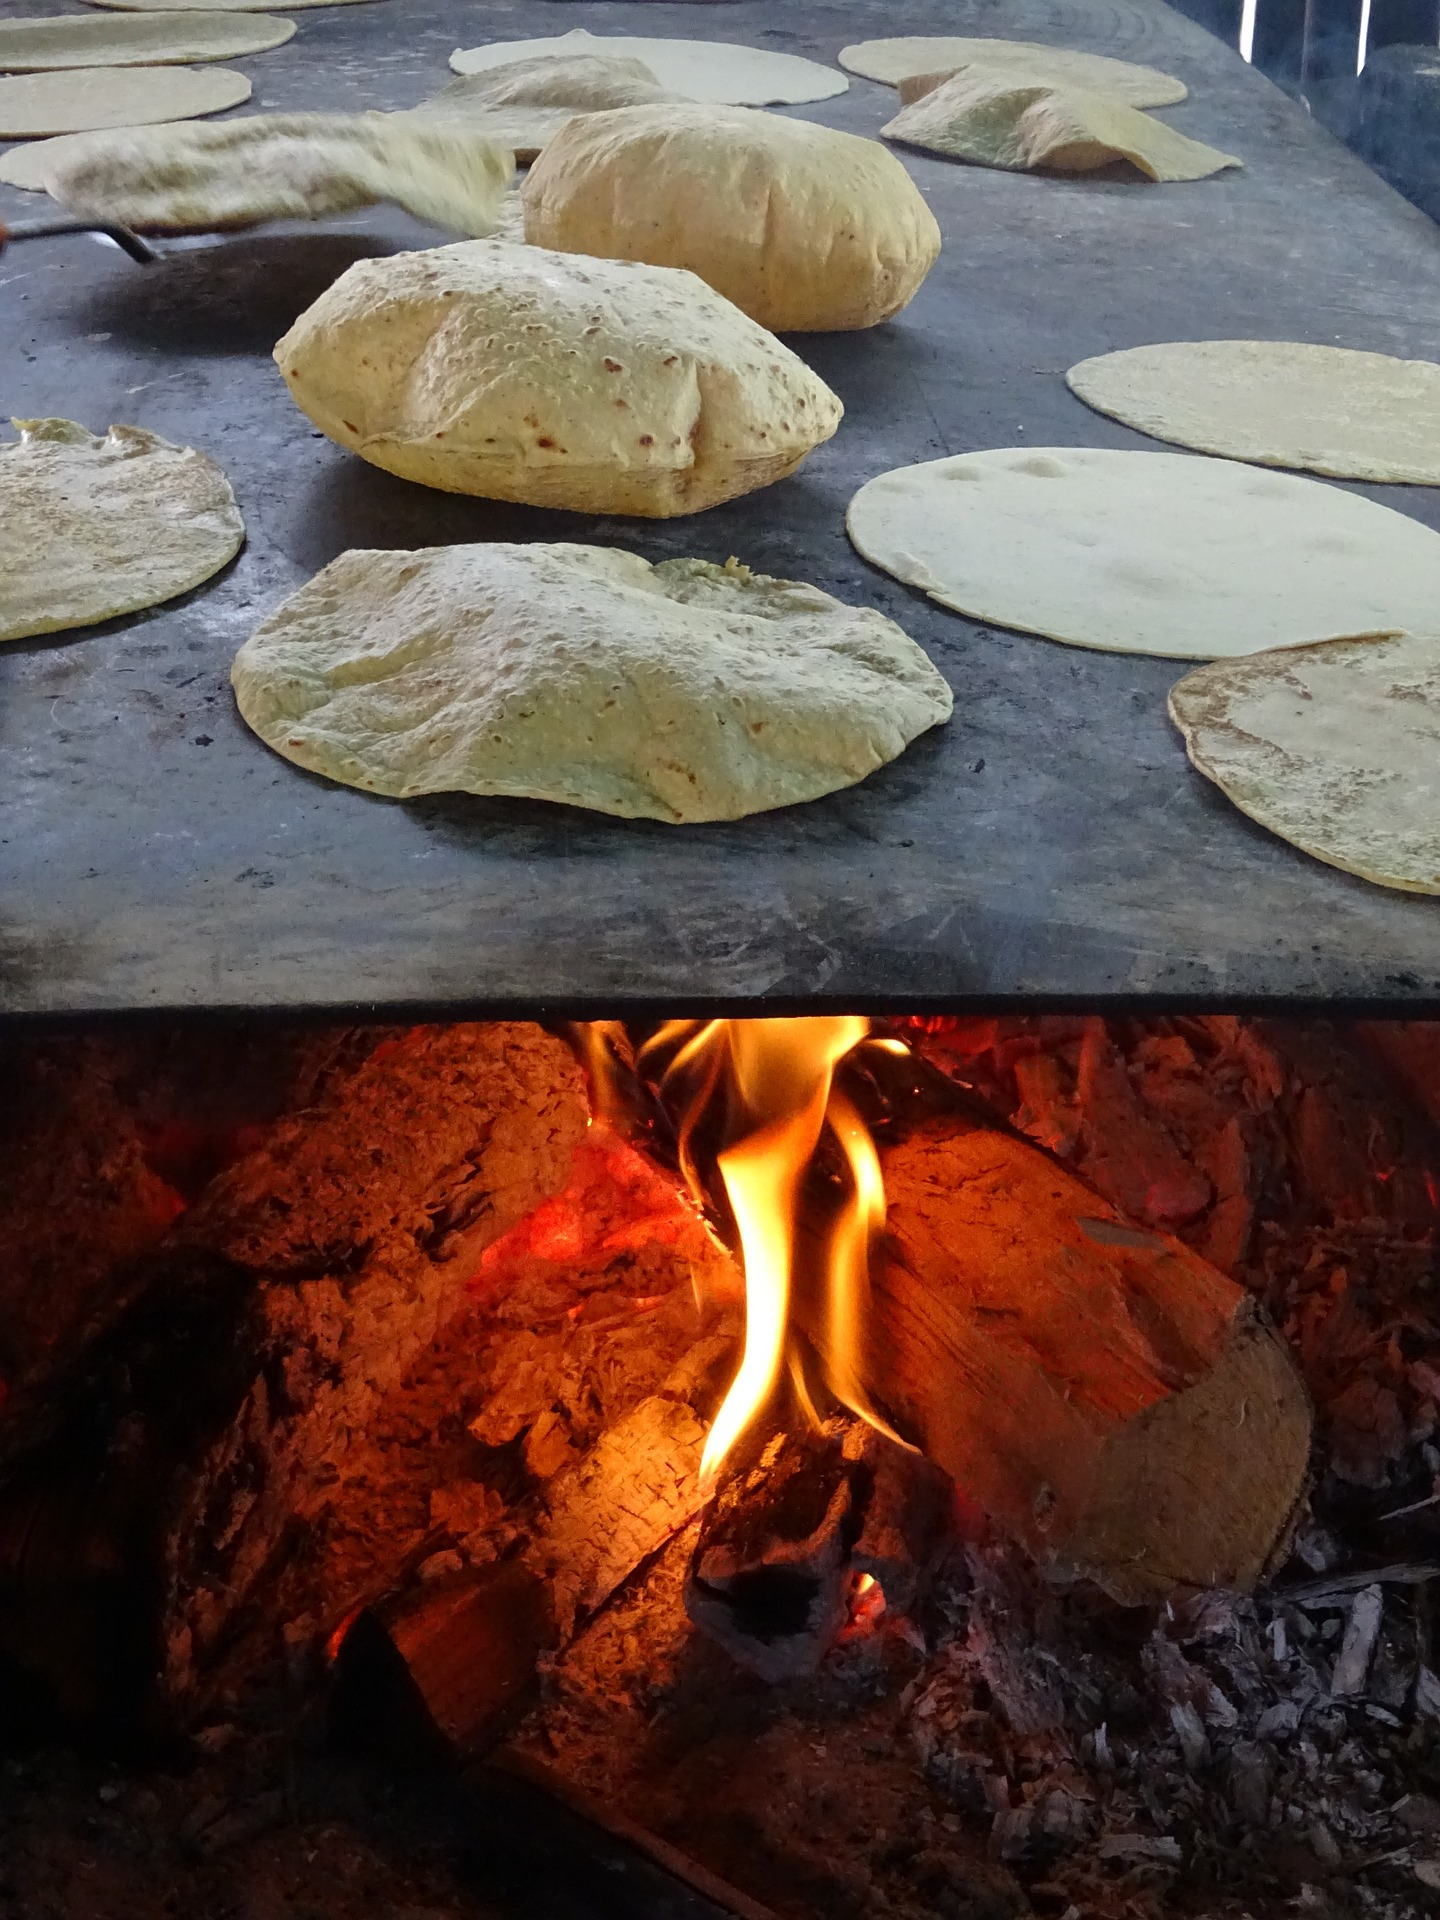 Tortillas cooking over a fire.